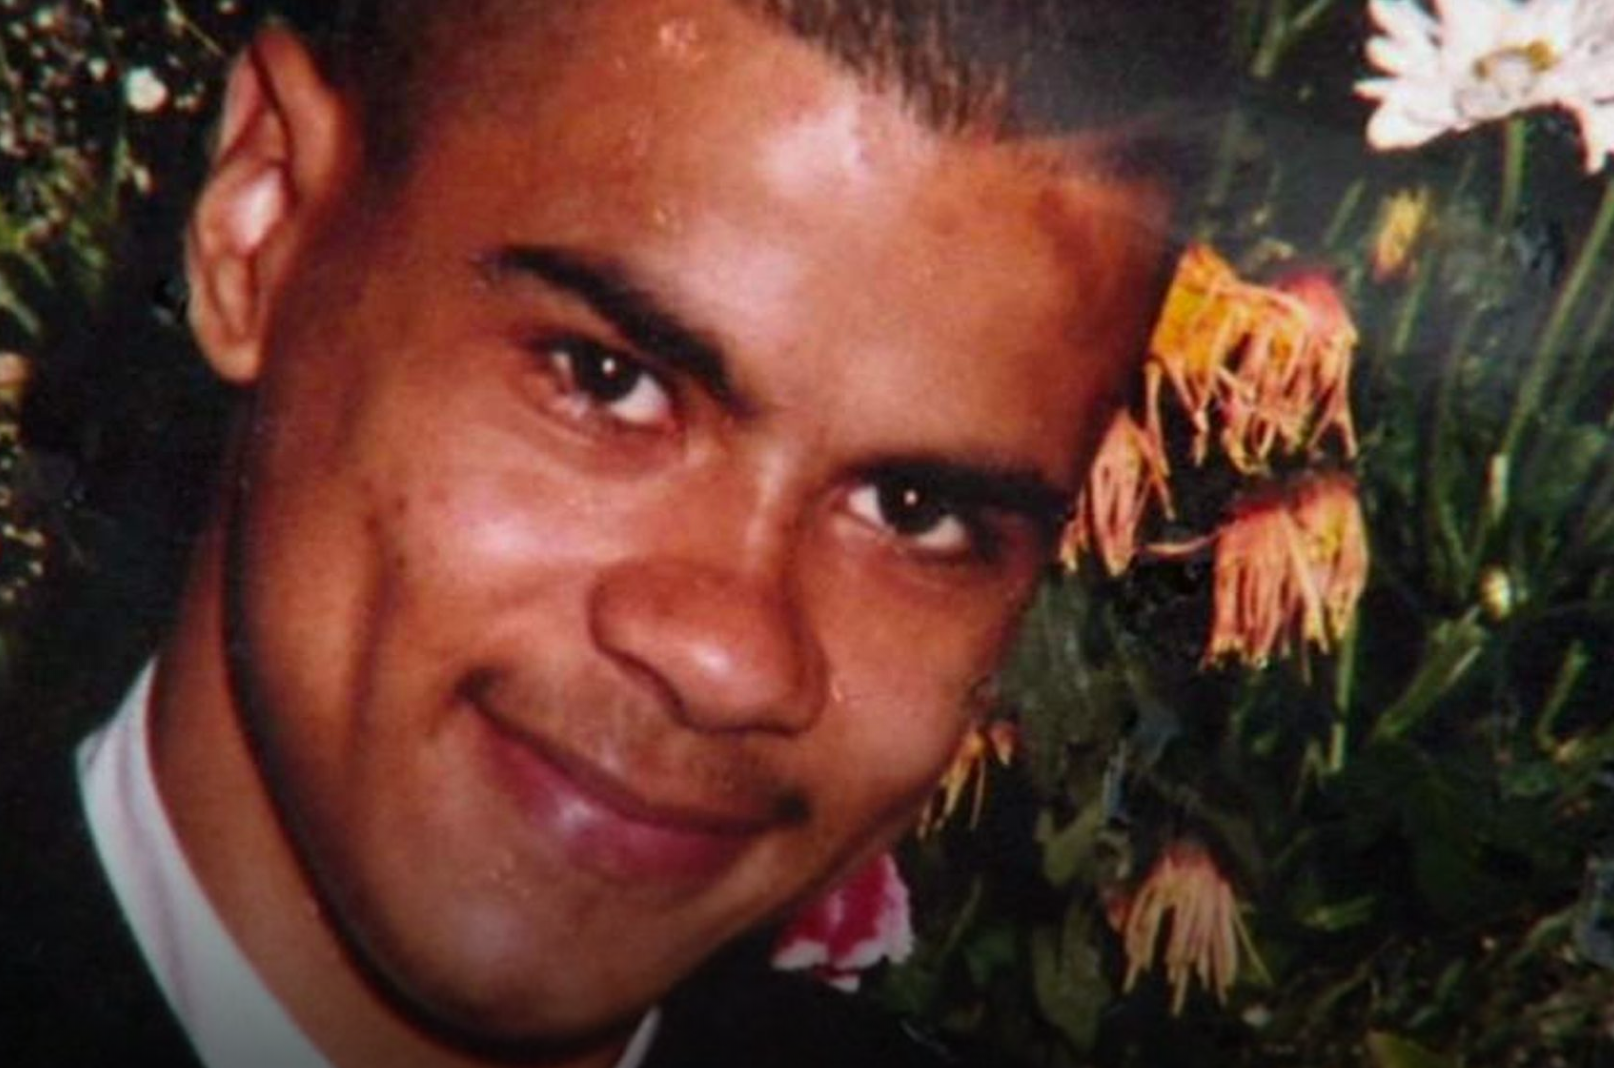 Mark Duggan's Family Have Reached A Settlement With The Met Police Over His Death